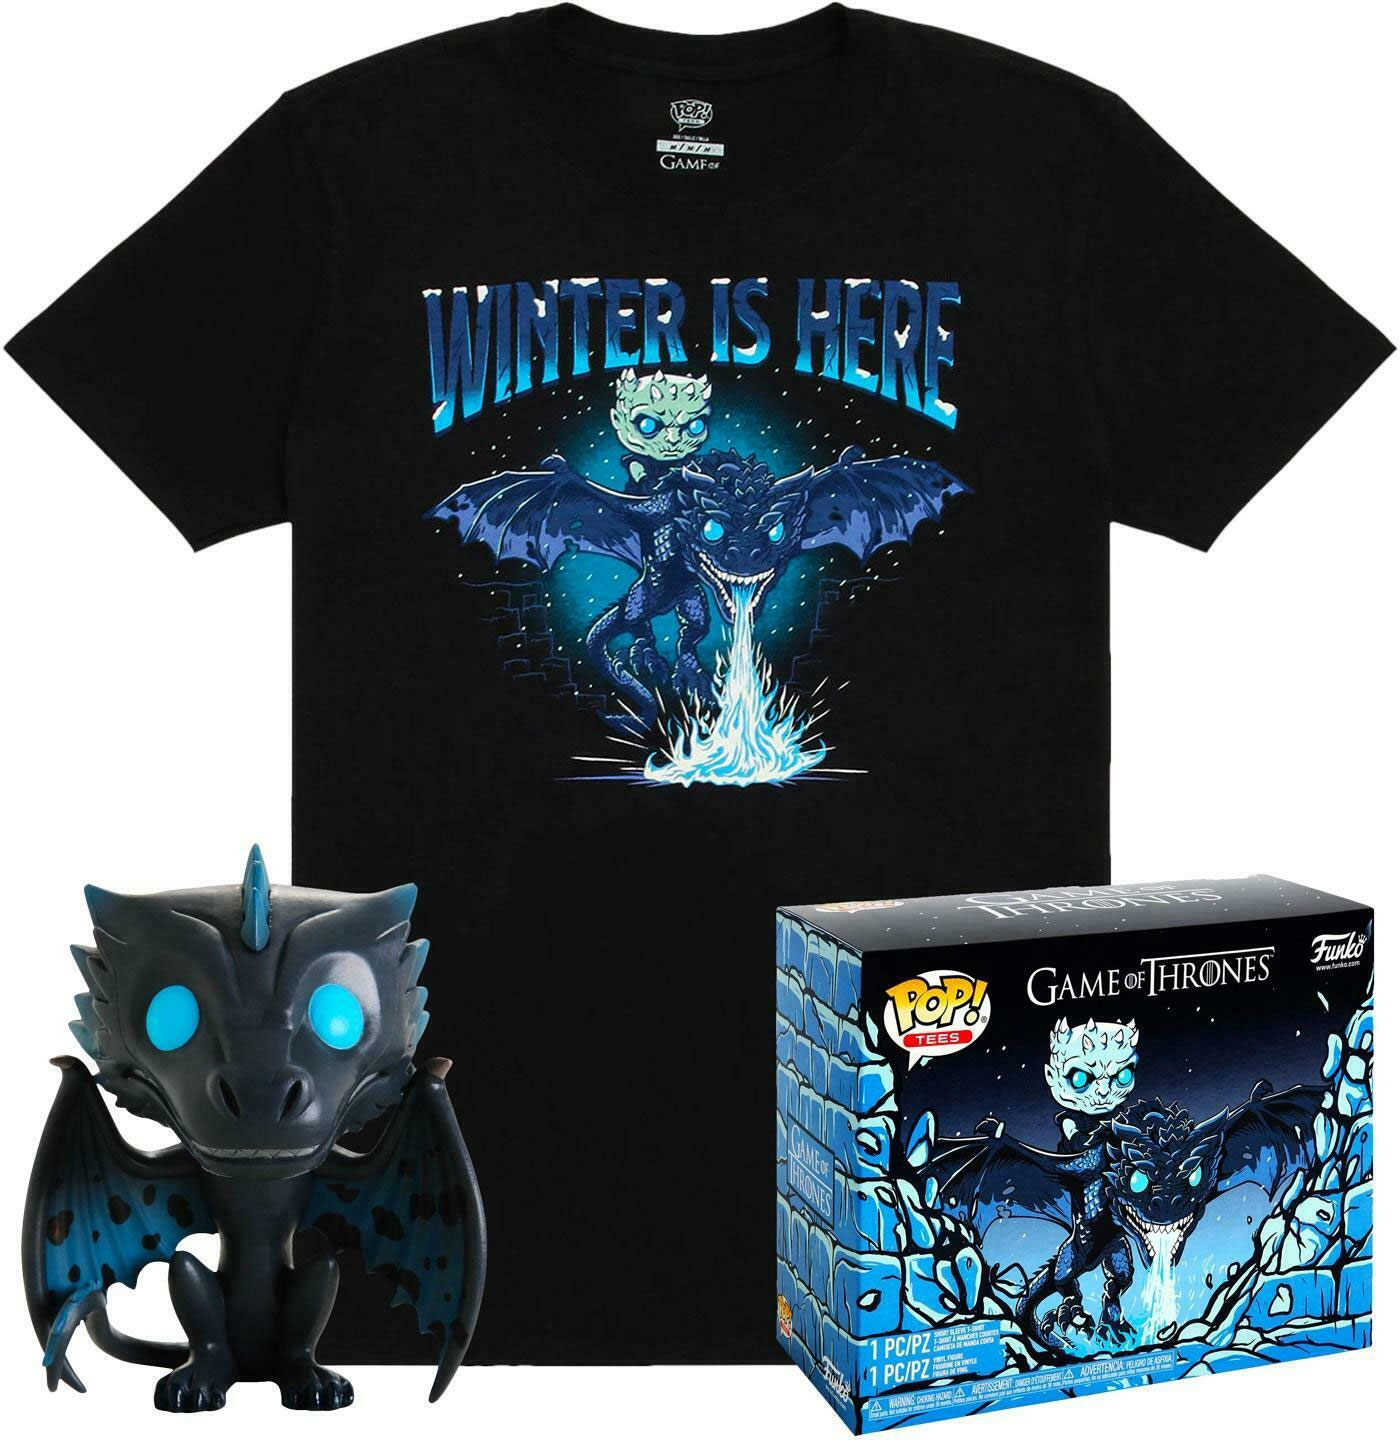 Game of Thrones POP! & Tee Box Icy Viserion heo Exclusive Size S